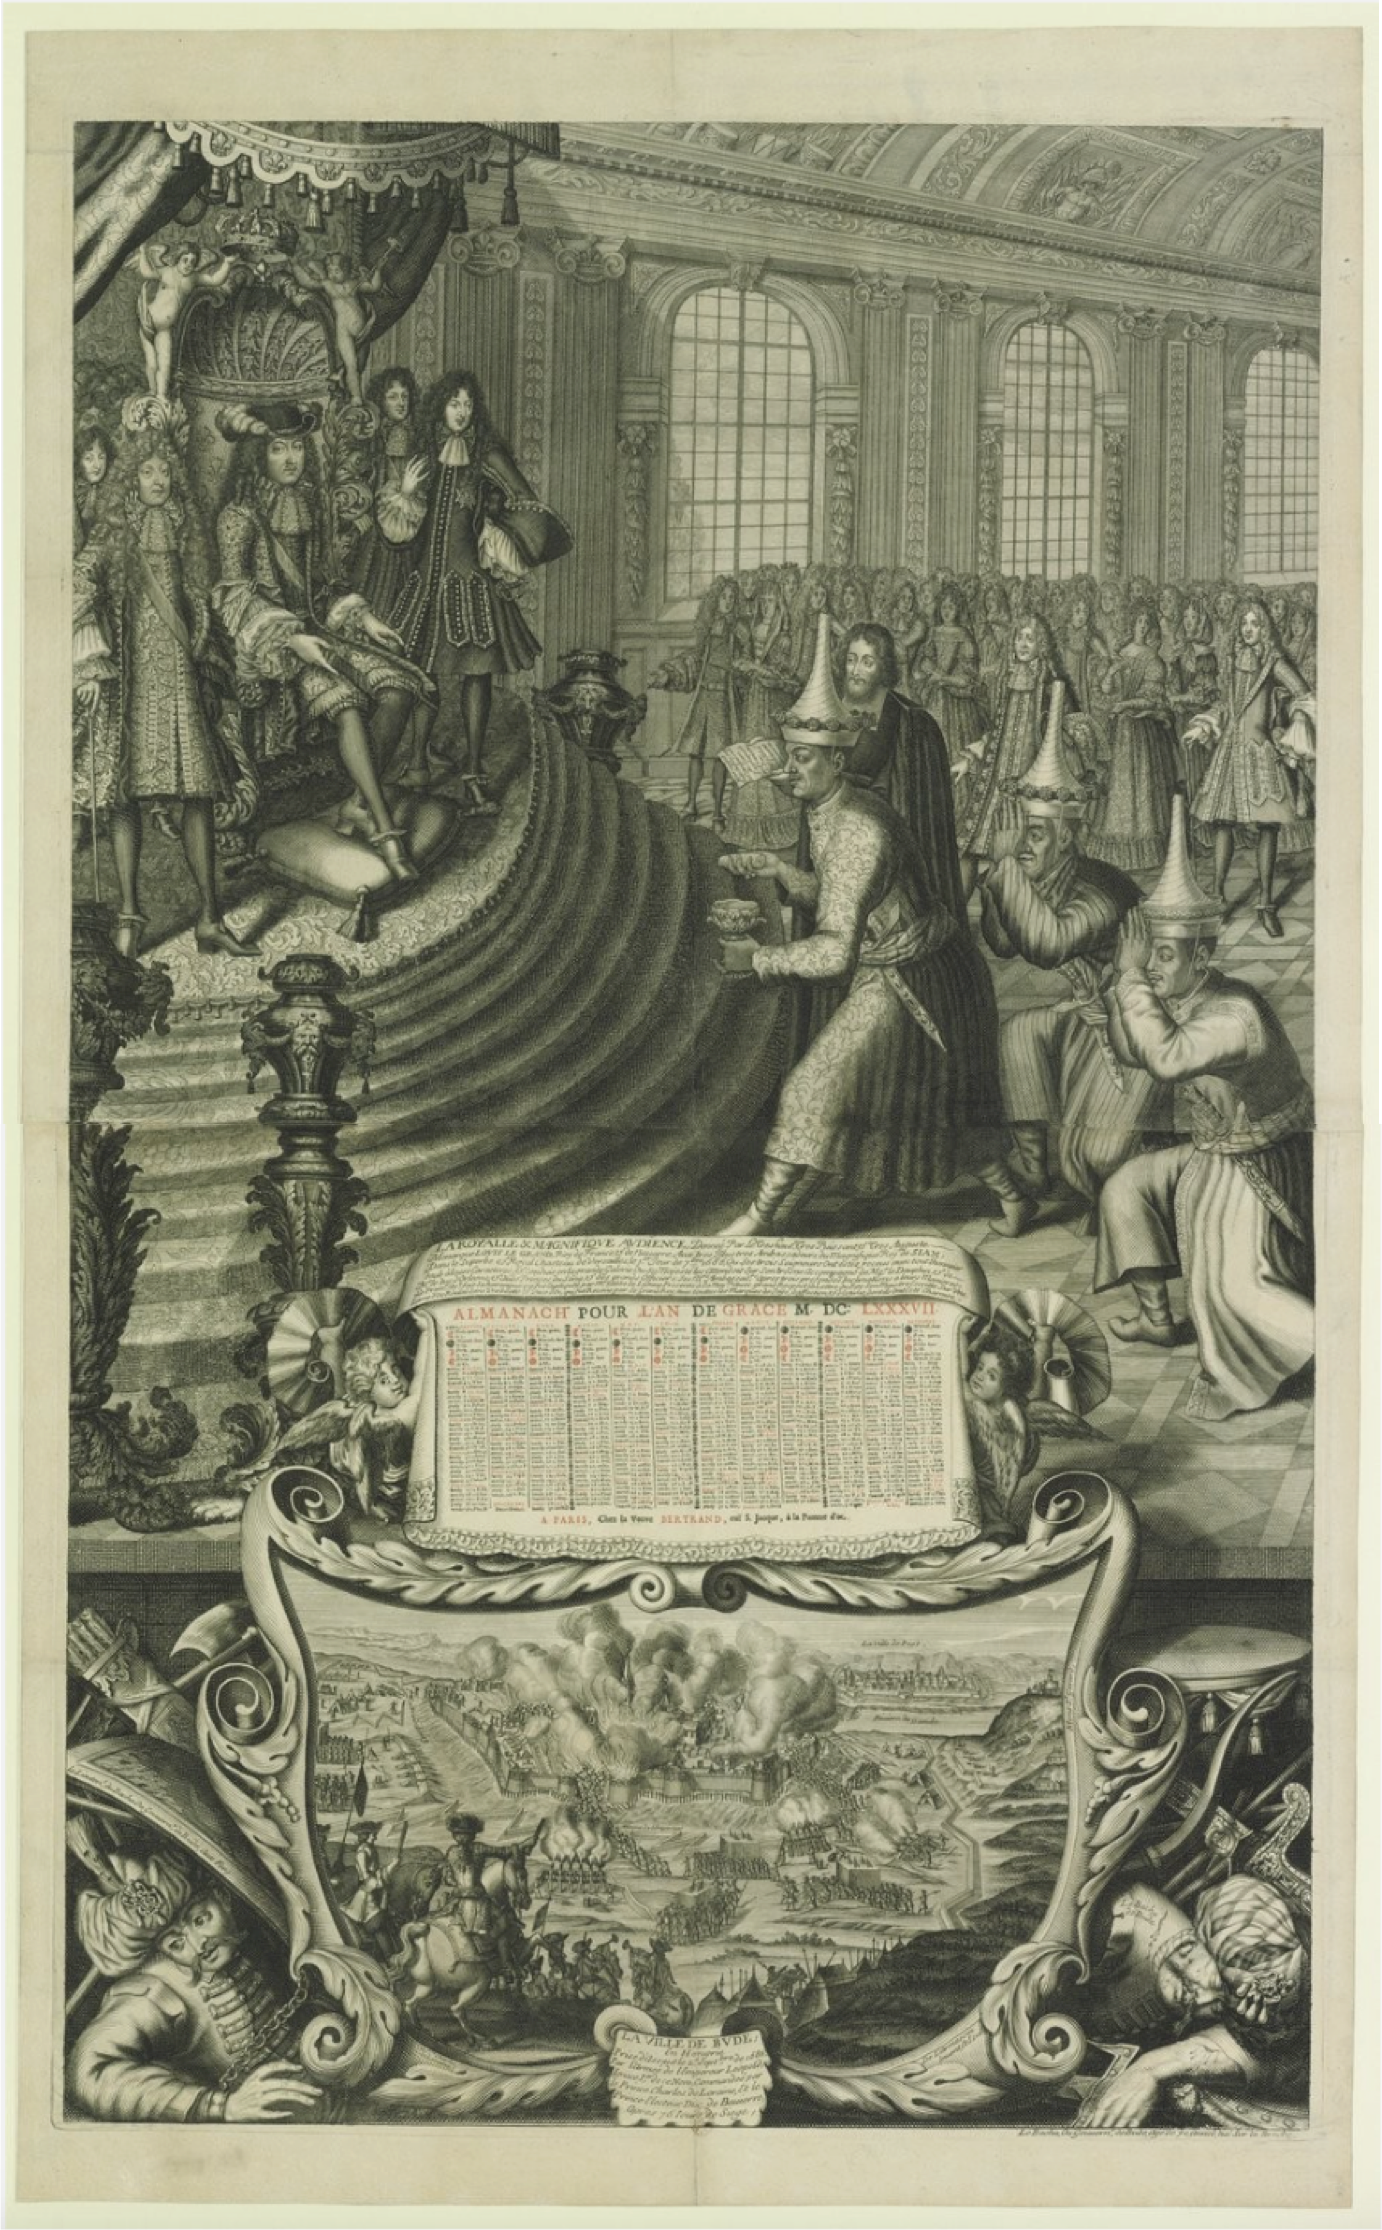 Fig. 2 : Nicolas de Larmessin II, The Royal and Magnificent Audience Given by [...] Louis the Great, King of France and Navarre, to the Very Illustrious Ambassadors of the Magnificent King of Siam [...], published by Veuve Bertrand, 1687. Engraving and etching, 90 x 56.2 cm. Paris: Bibliothèque Nationale de France, Estampes, Collection Michel Hennin, inv. 5550. Reproduced with permission.